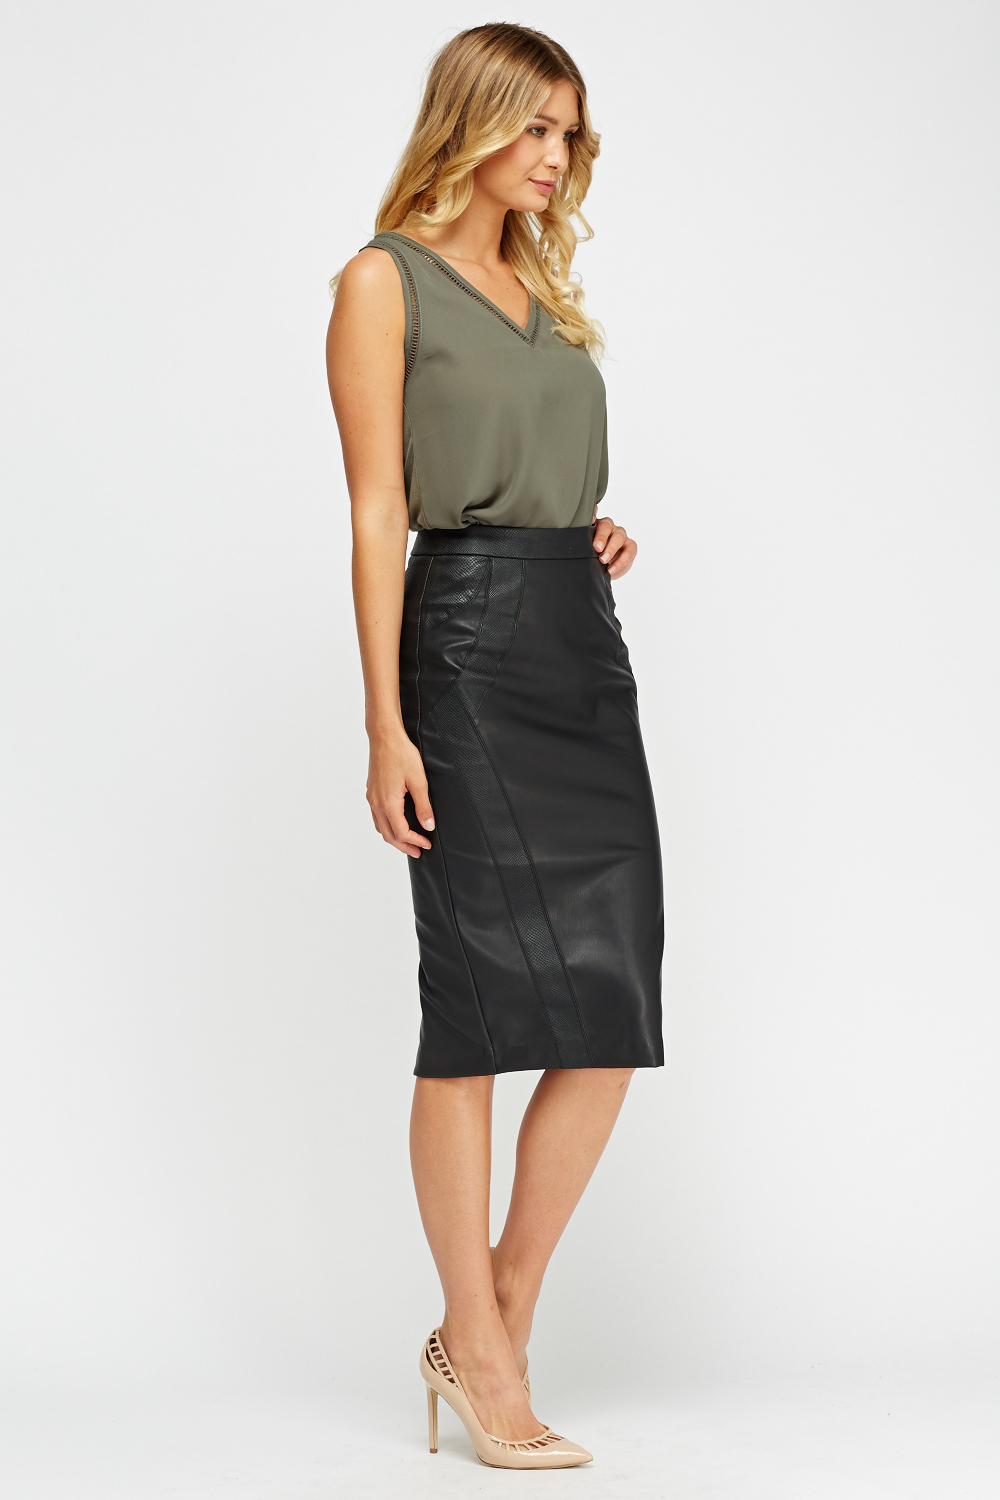 Midi Skirts. The midi skirt is a style staple you won't want to miss from your wardrobe this season. From sleek pencil styles to sculpting figure-hugging fits, the catwalk confirmed that mid length skirts are a must-have look for every girl's style fix this season. For straight talking sass go for a high shine or faux leather black midi.